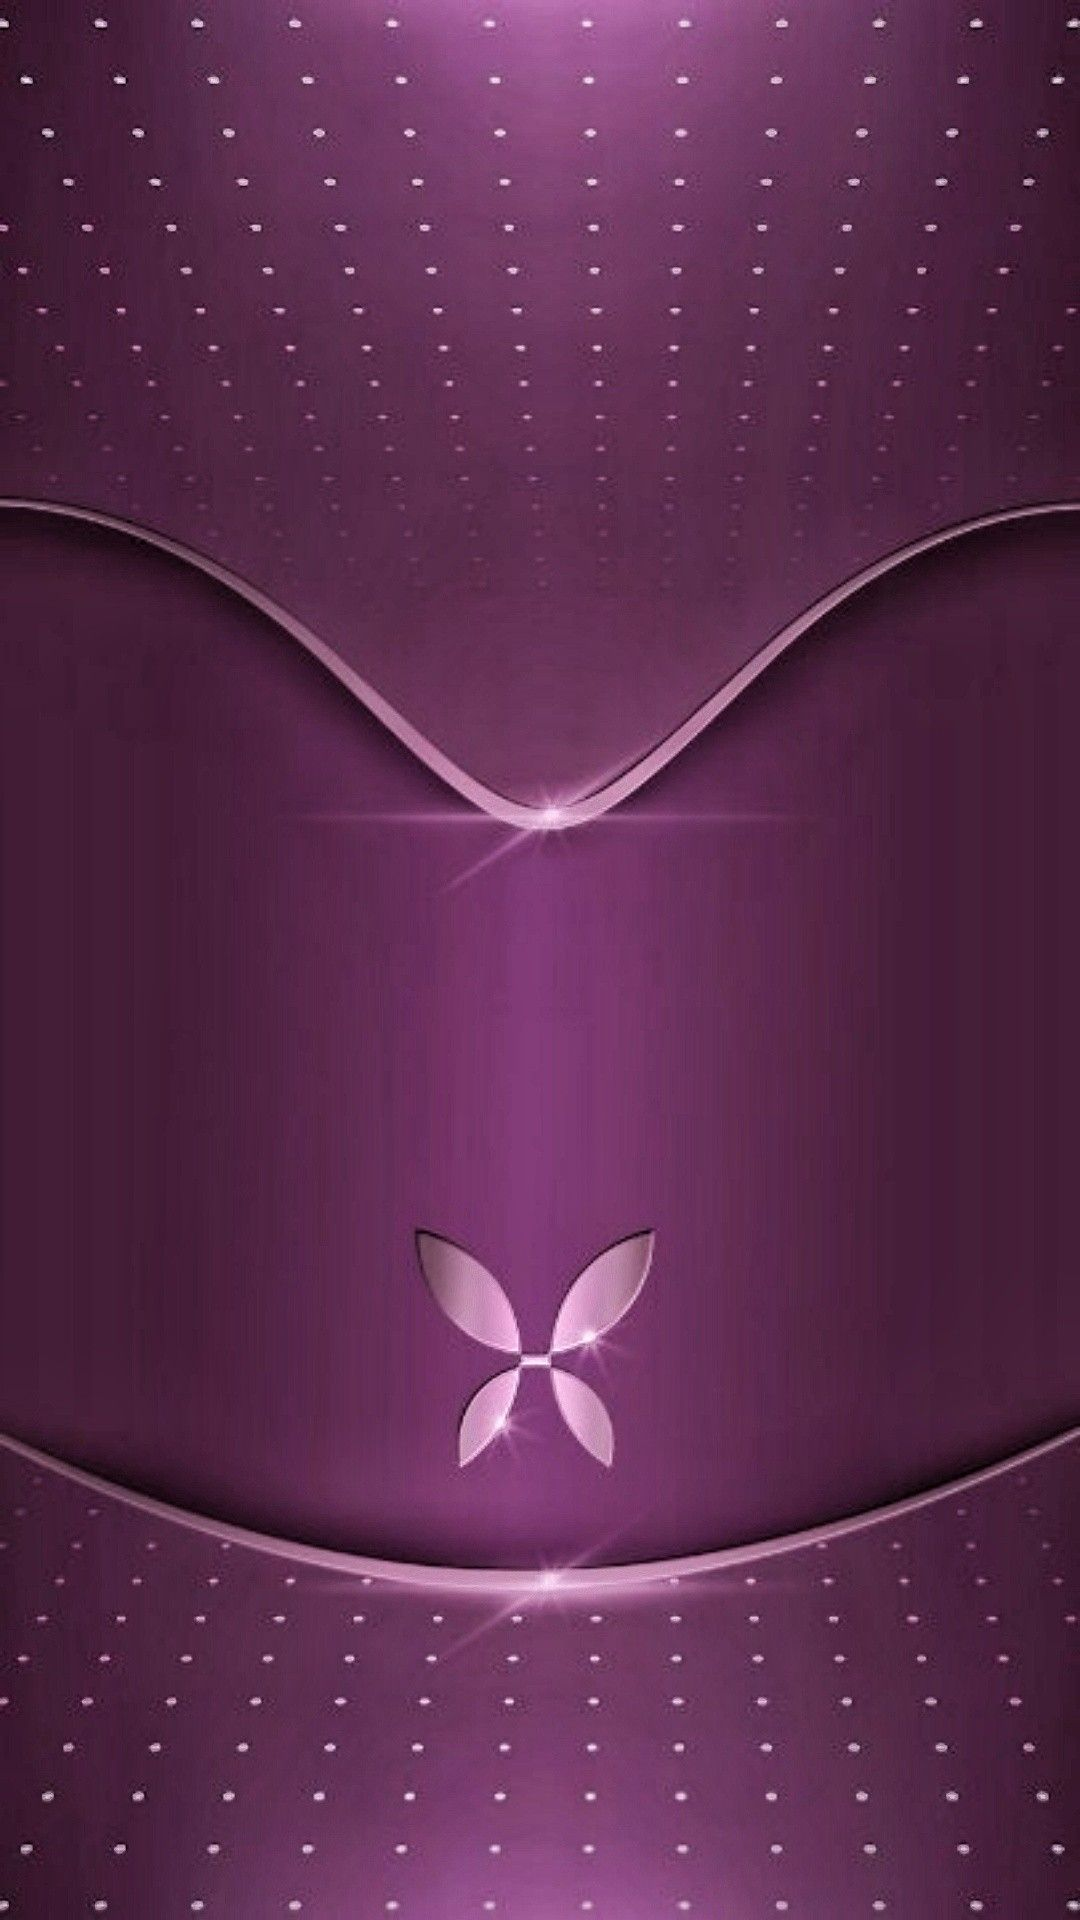 Pin By Khaireddine Yacoubi On Arriere Plans Purple